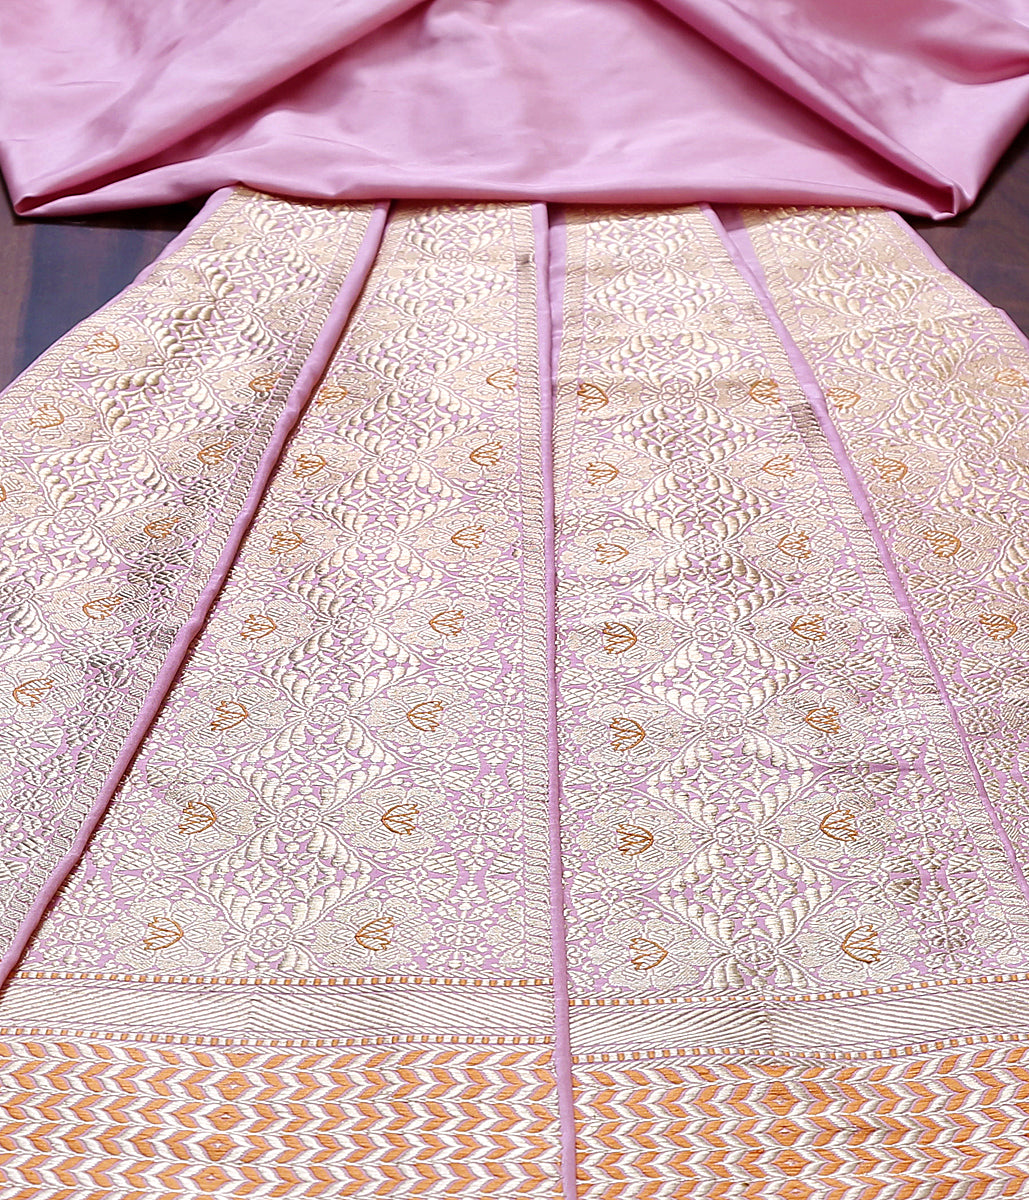 Handwoven Banarasi Lehenga panels in blush pink with meenakari